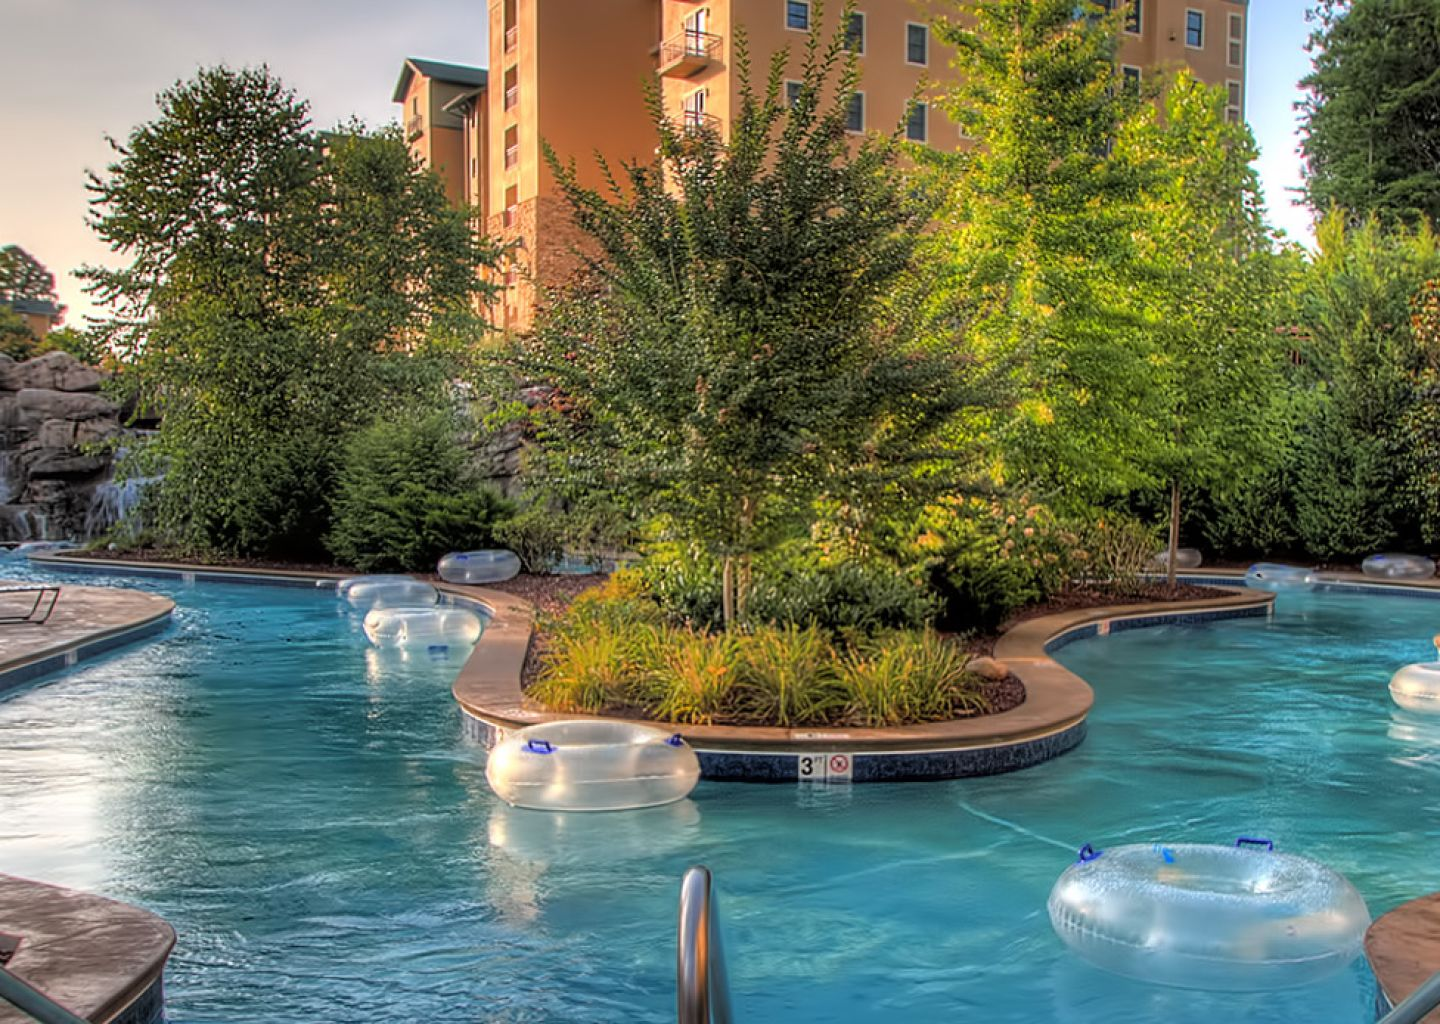 RiverStone Resort and Spa - Pigeon Forge, TN